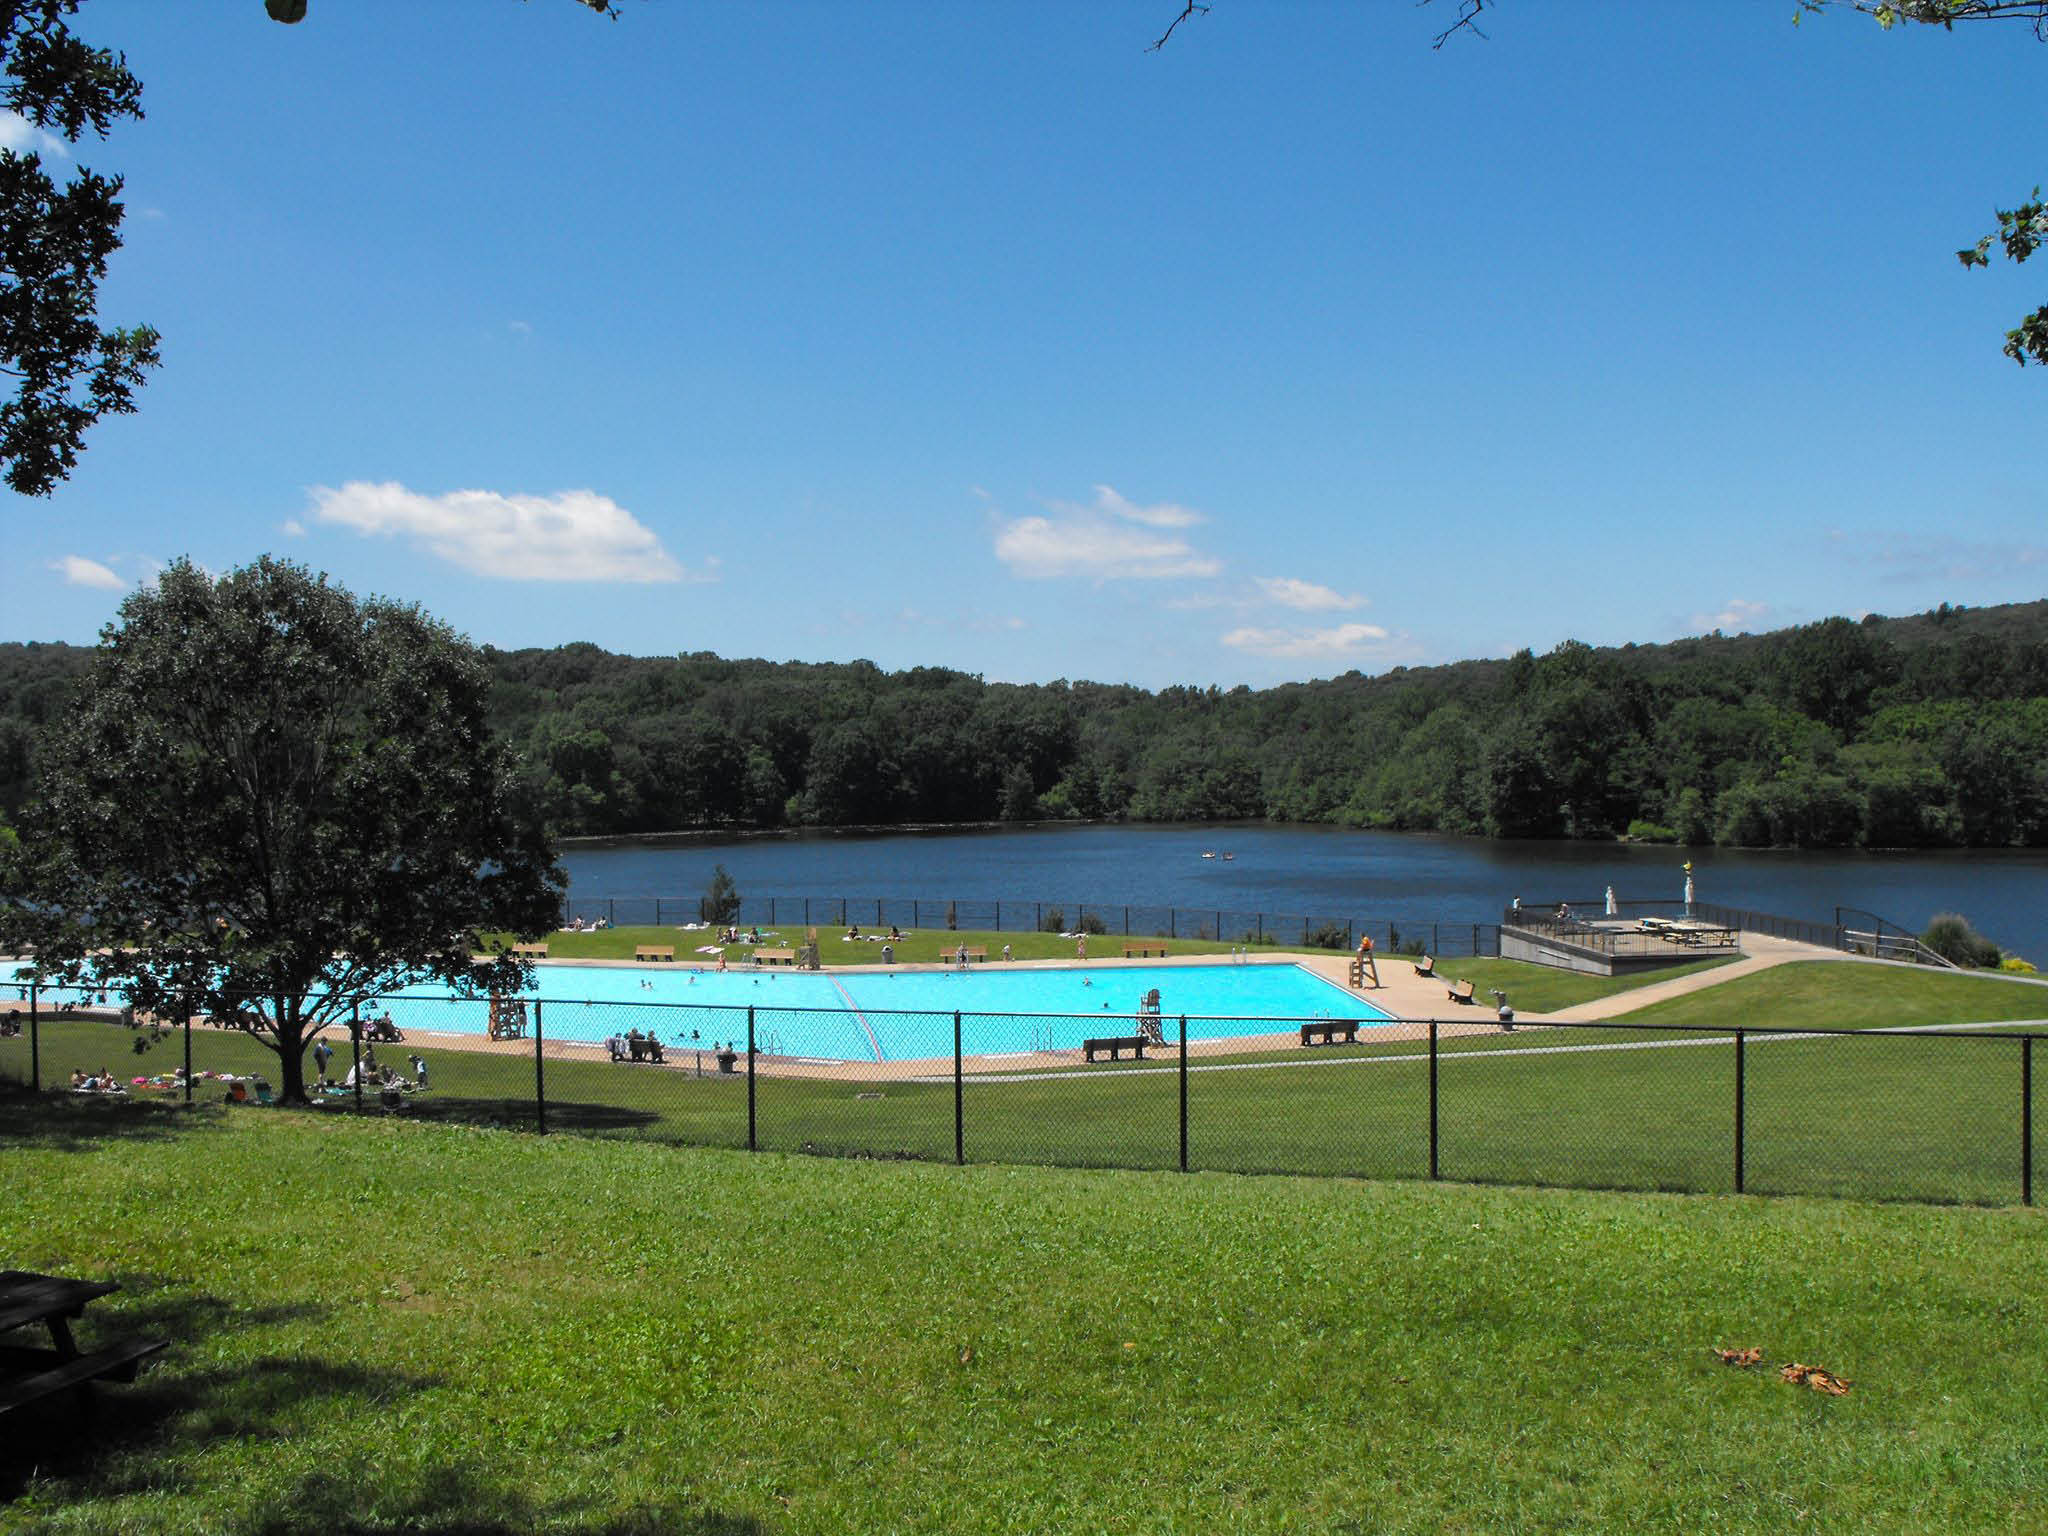 Swimming pools in the Reading, PA area